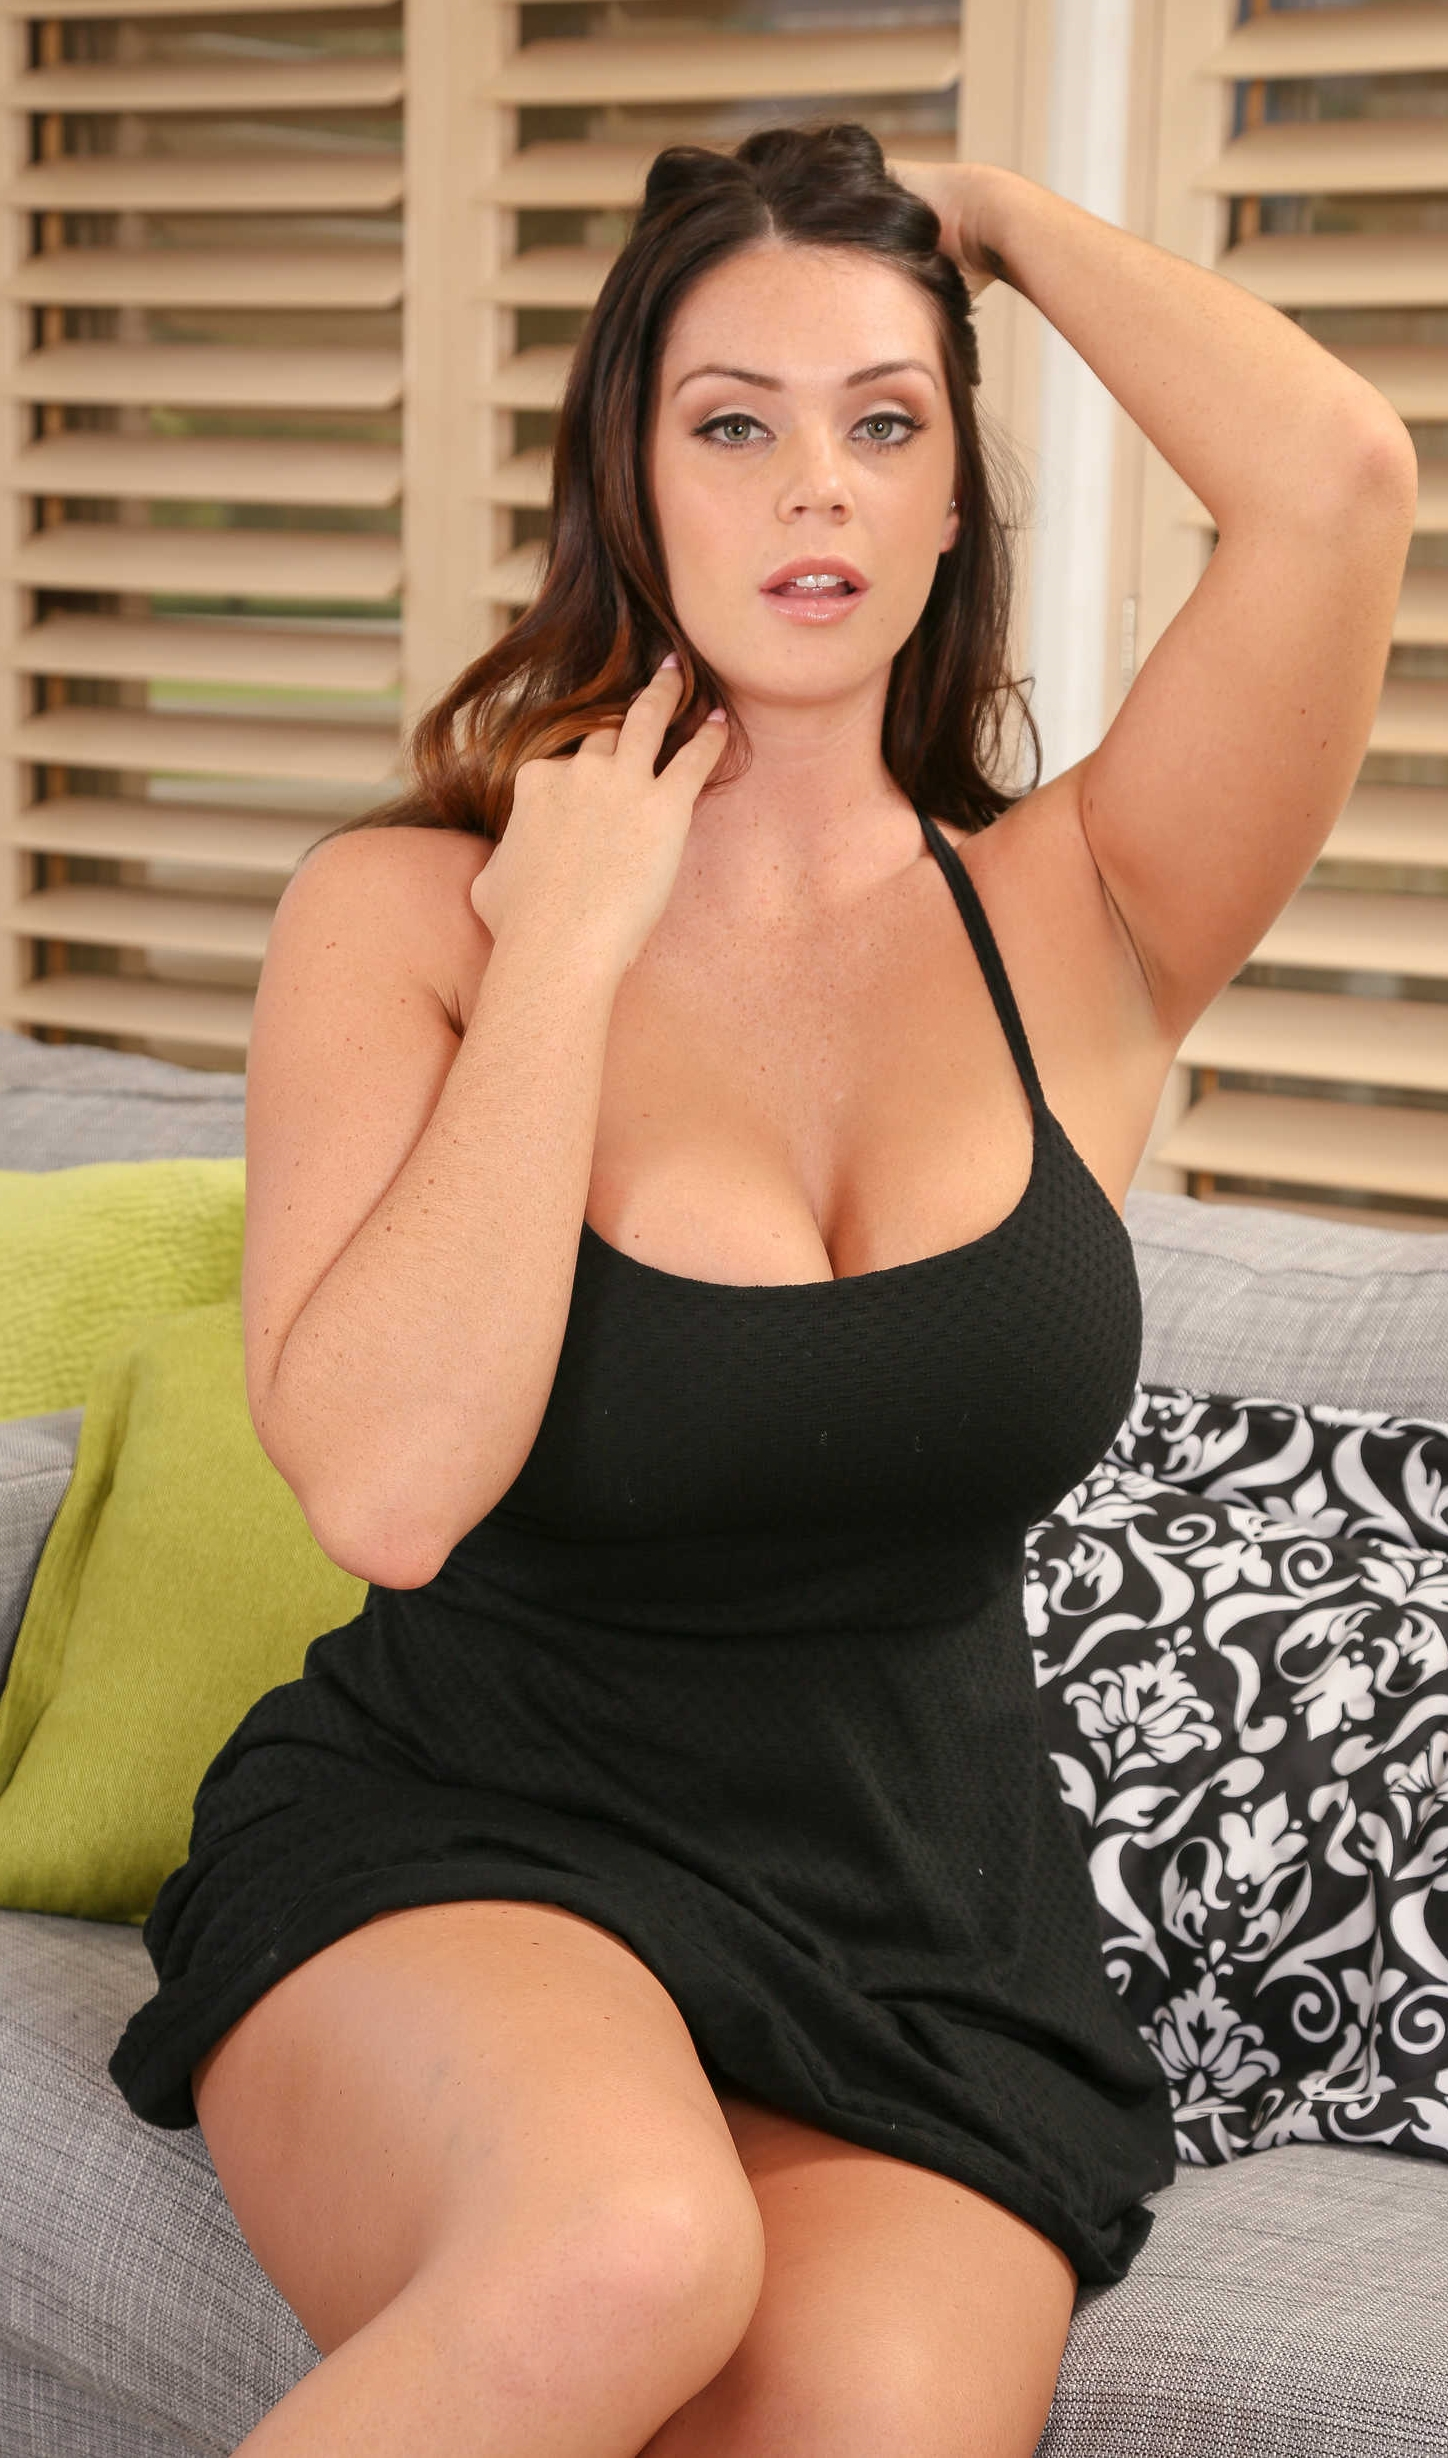 How tall is alison tyler